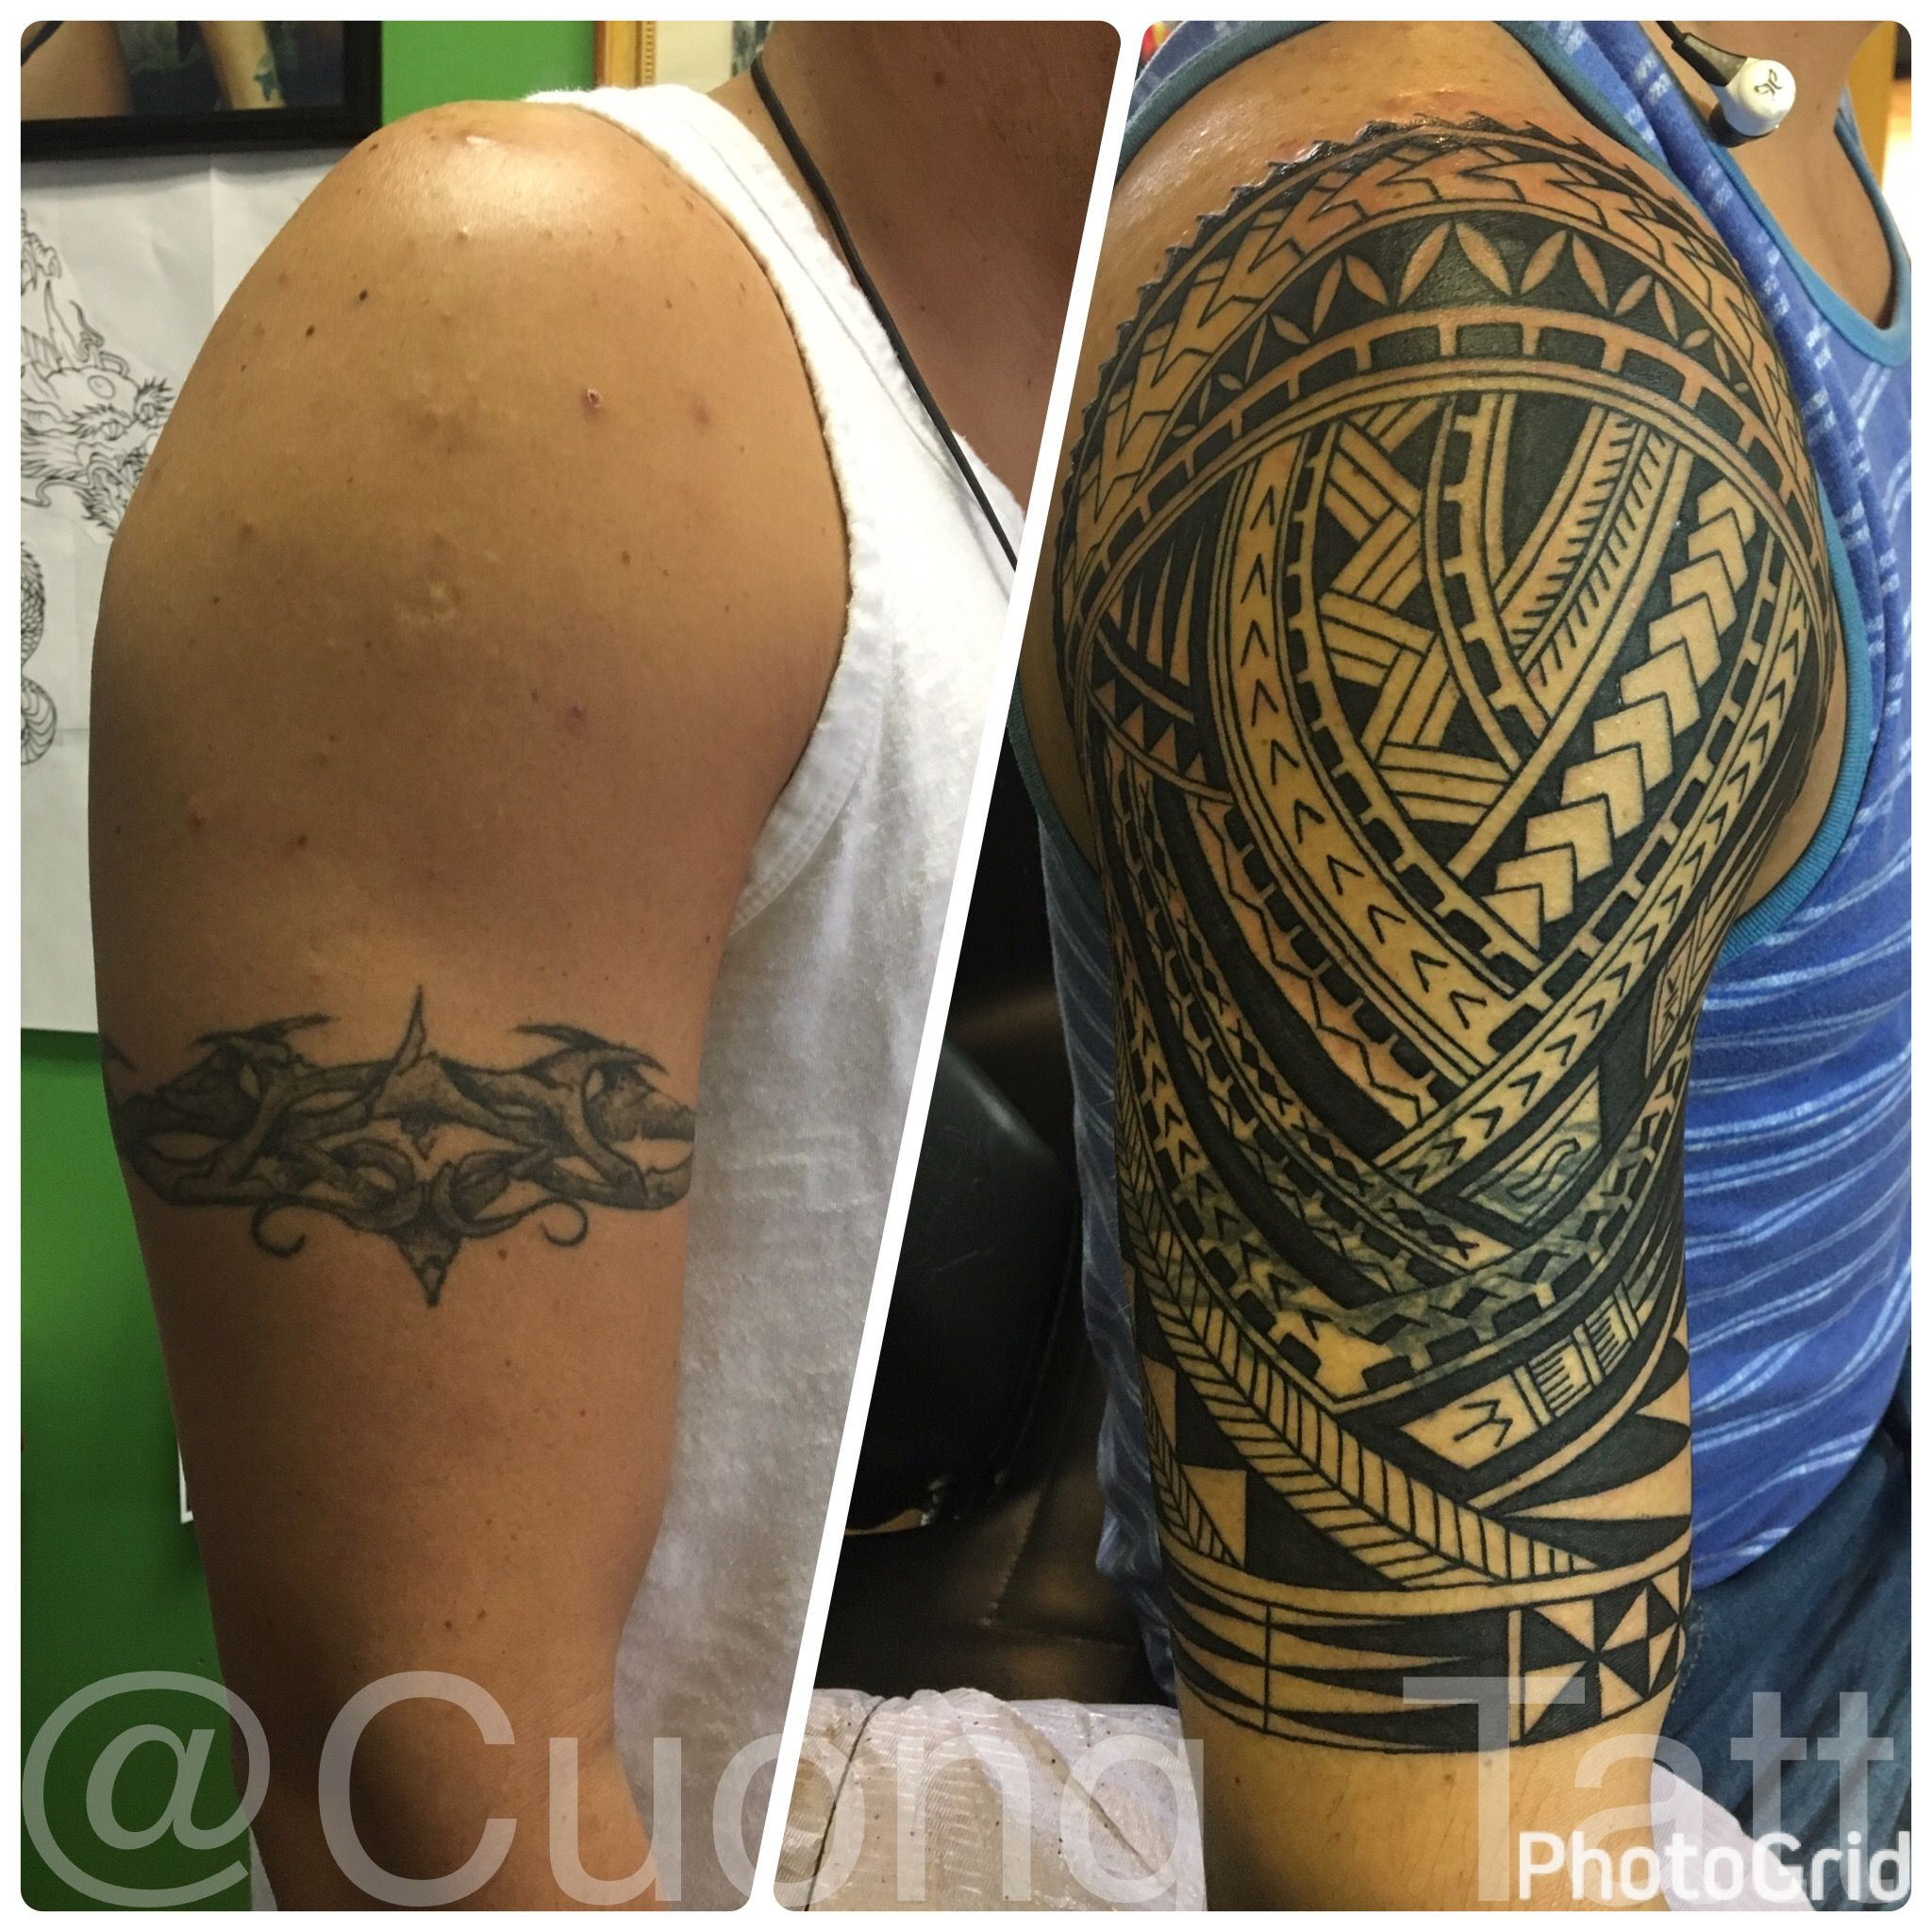 Polynesian Tribal Cover Up Halfsleeve Tattoo 1st Session Done Cover Up Schwarze Tattoos Schwarze Tattoos Tattoos